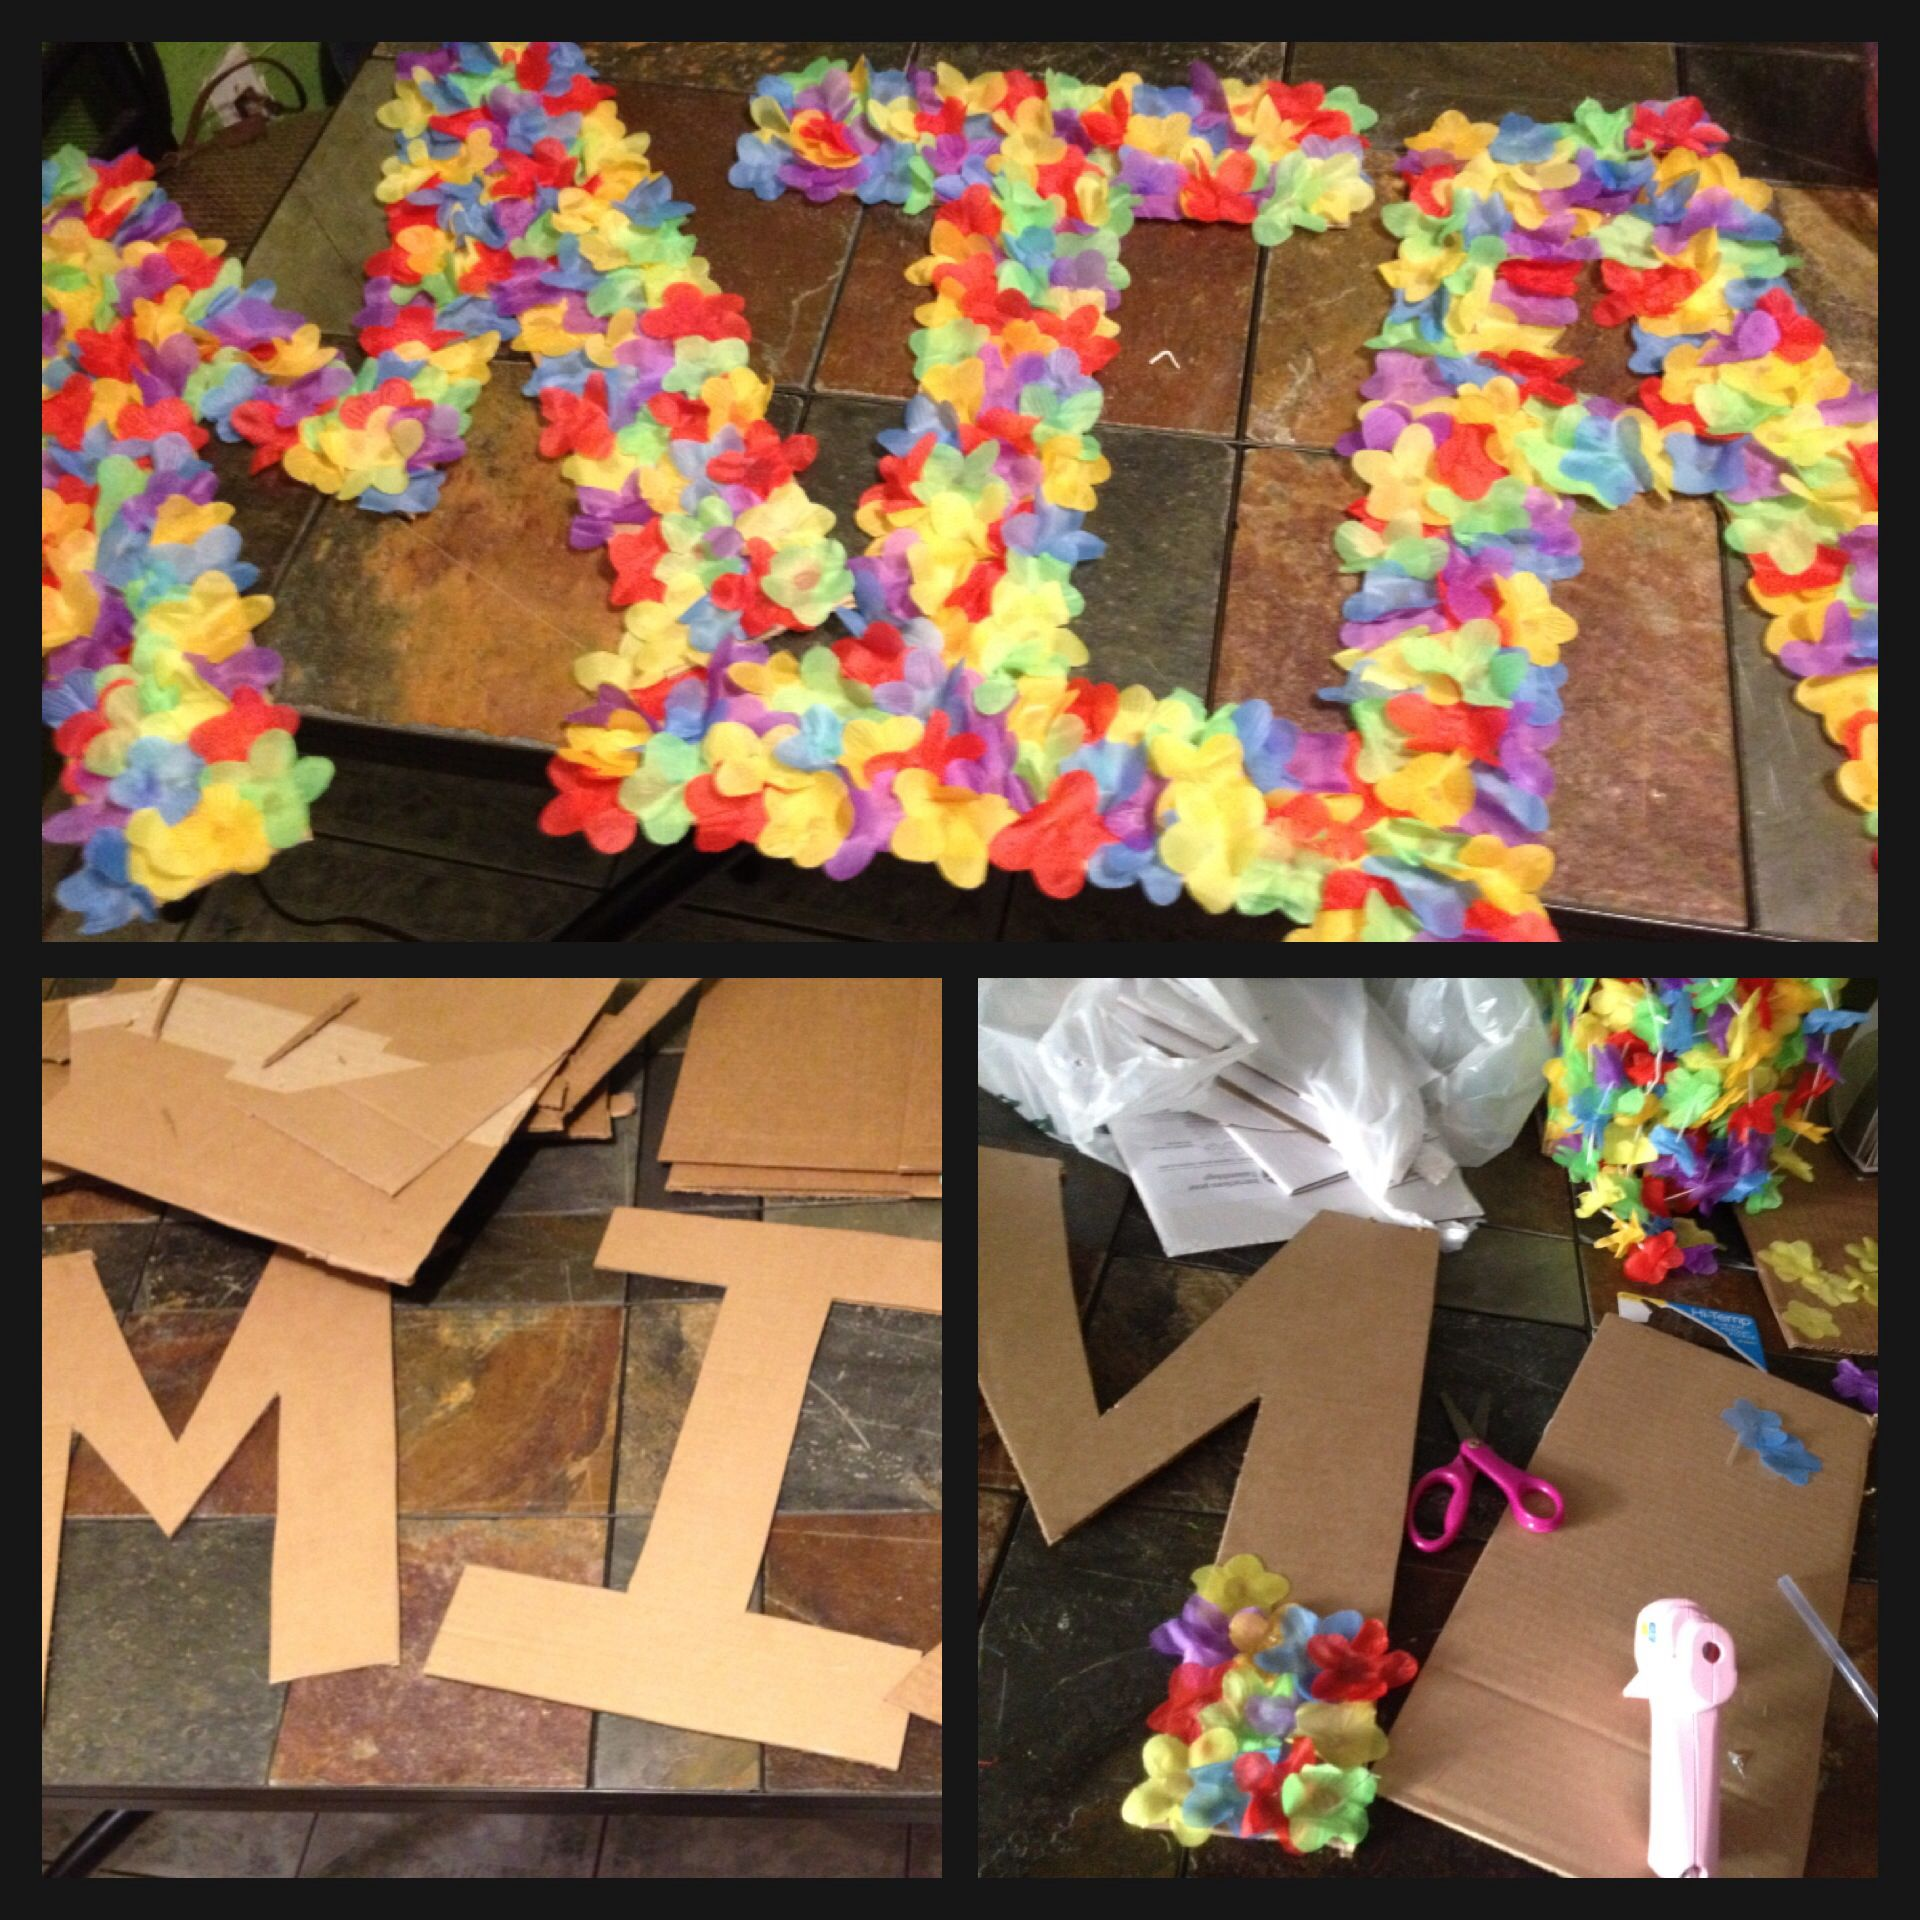 Diy luau board name diy arts and crafts pinterest for 50th birthday party decoration ideas diy